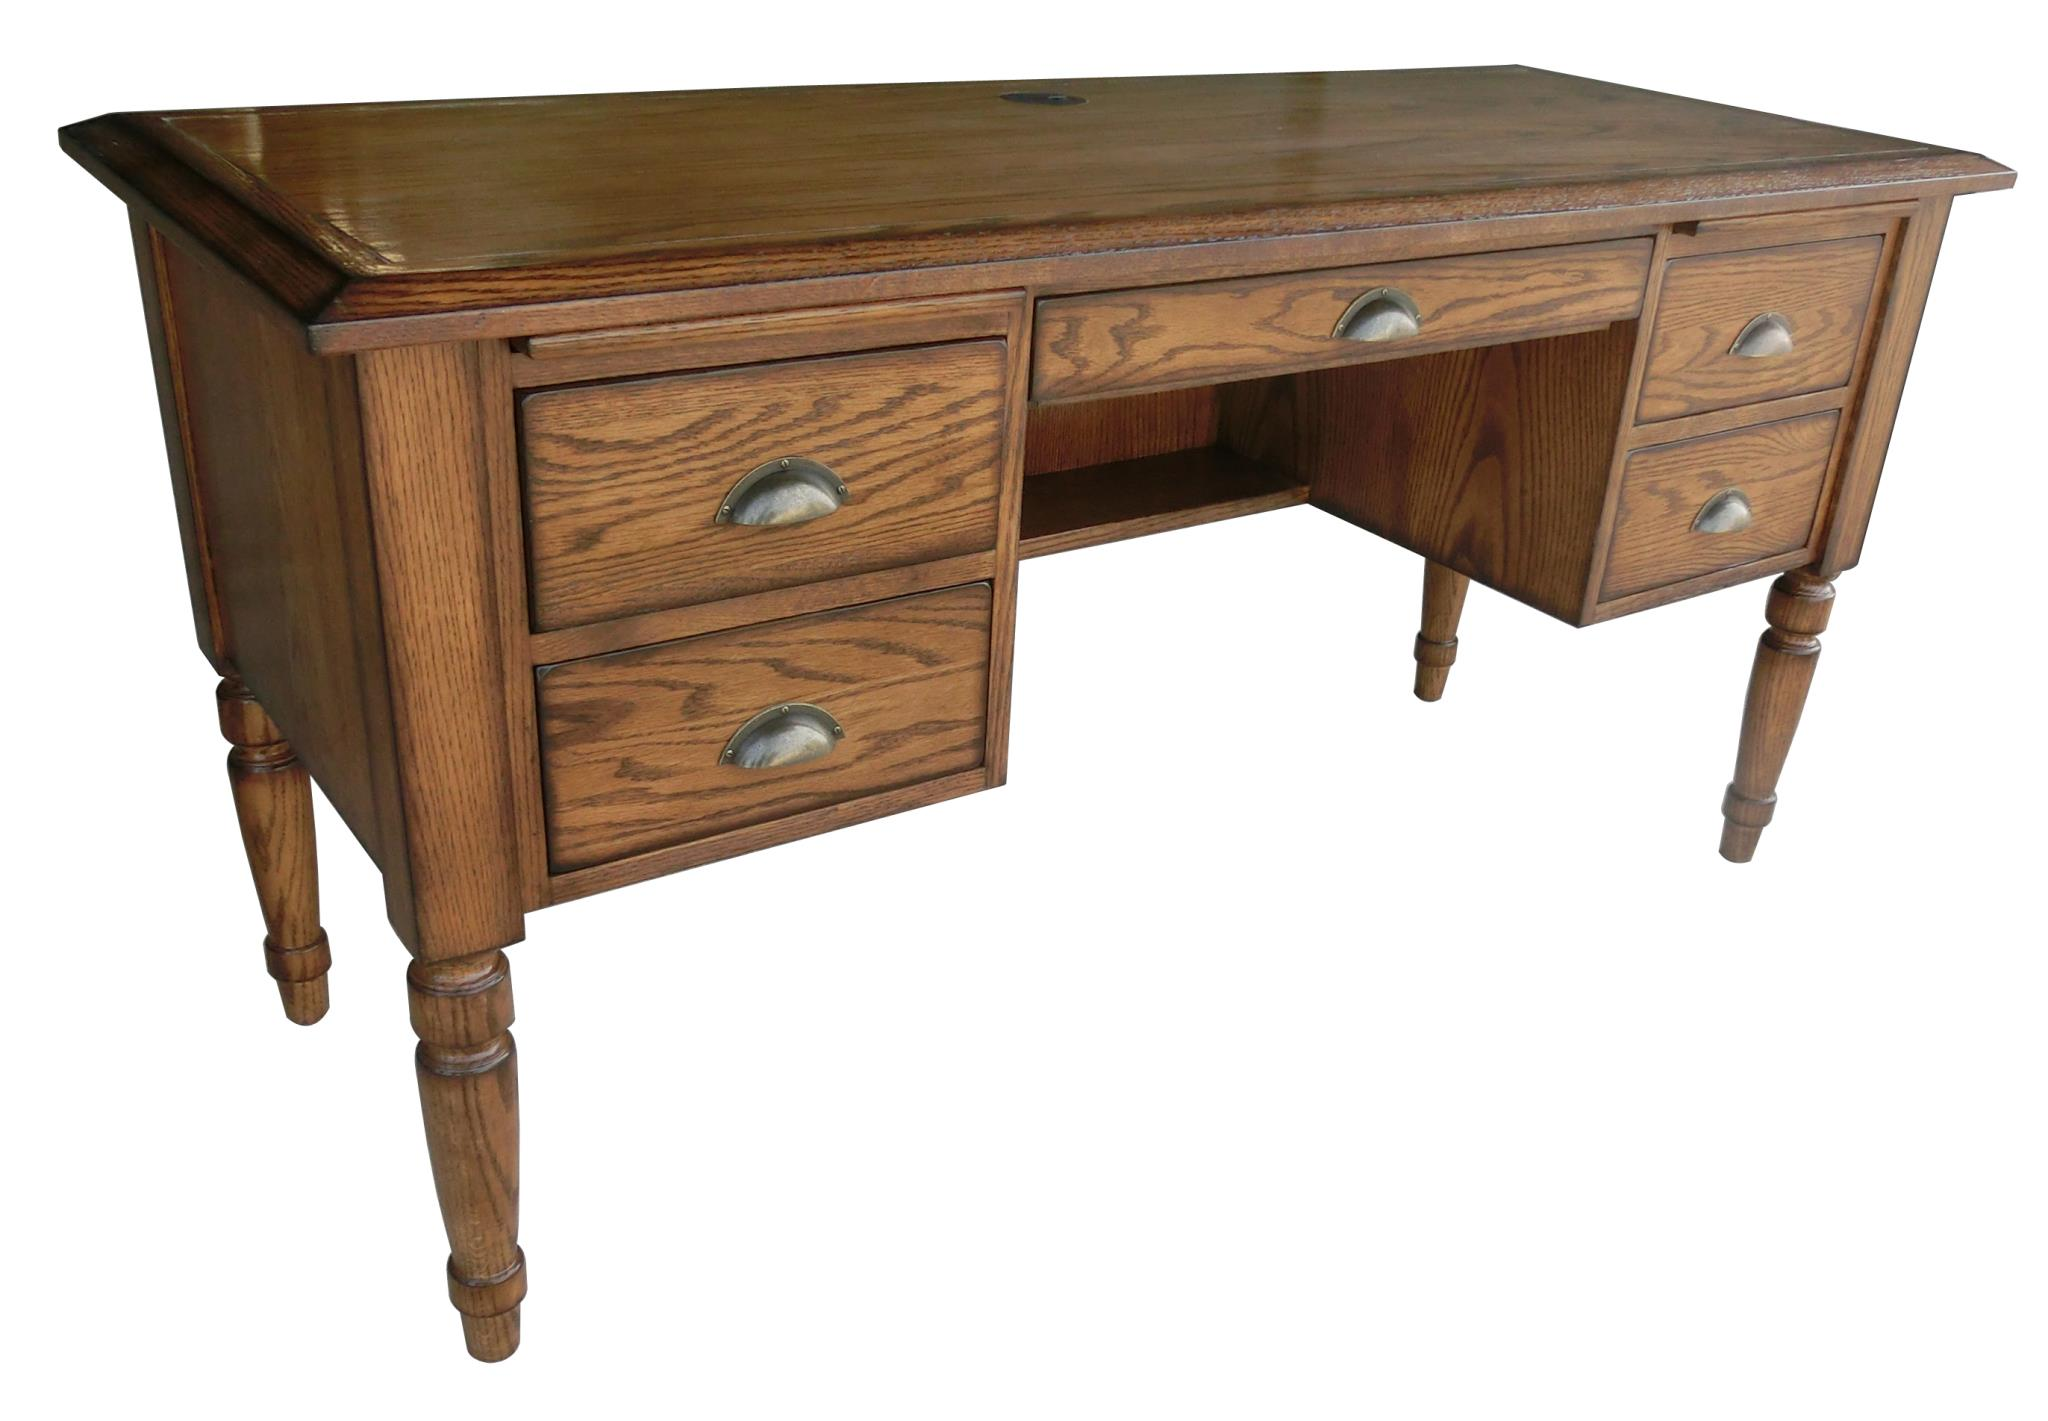 Oak Furniture Outlet Knoxville Tn Oak Factory Outlet In Knoxville Tn 865 454 8 Home Office